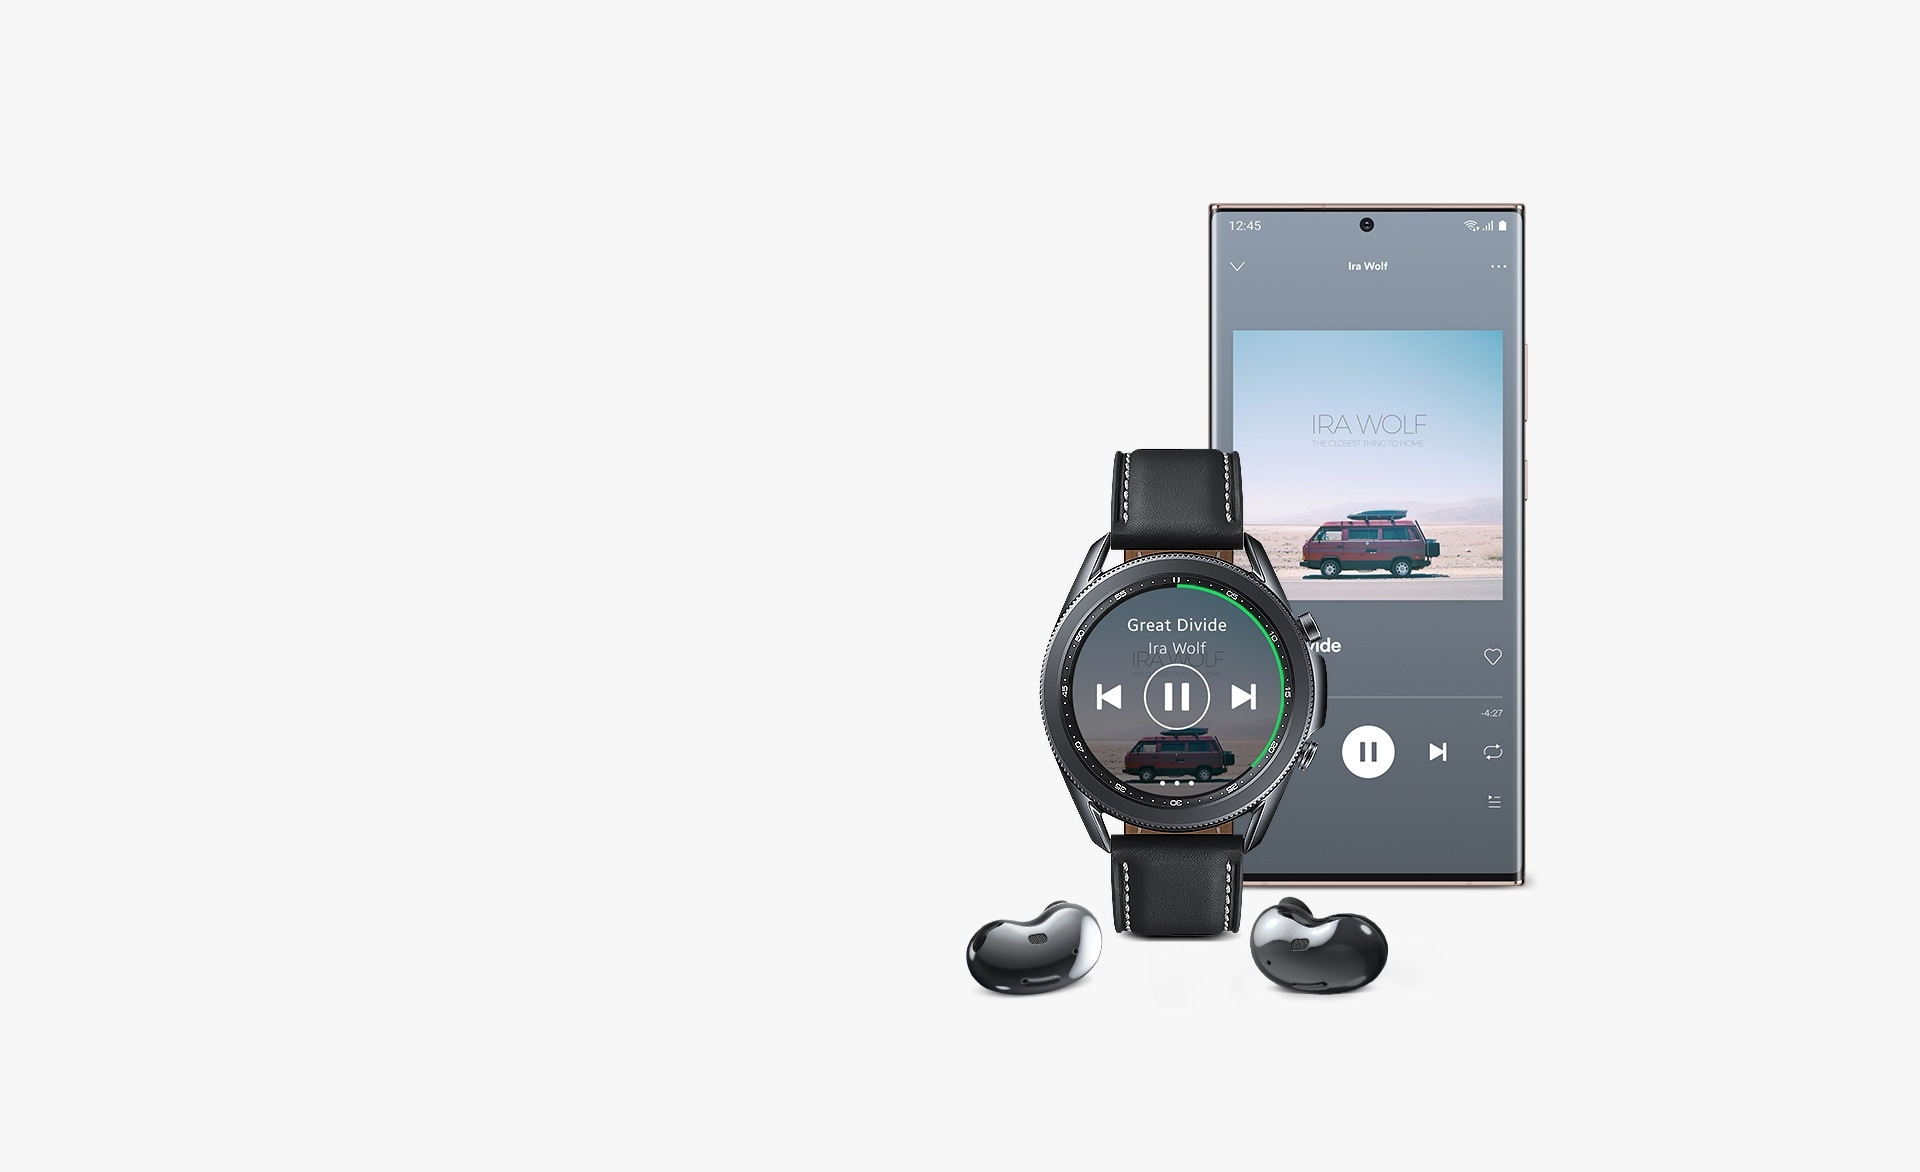 https://images.samsung.com/is/image/samsung/rs/galaxy-note20/feature/341633/rs-feature-galaxy-watch3-bluetooth-41mm-128-275015222?$ORIGIN_JPG$